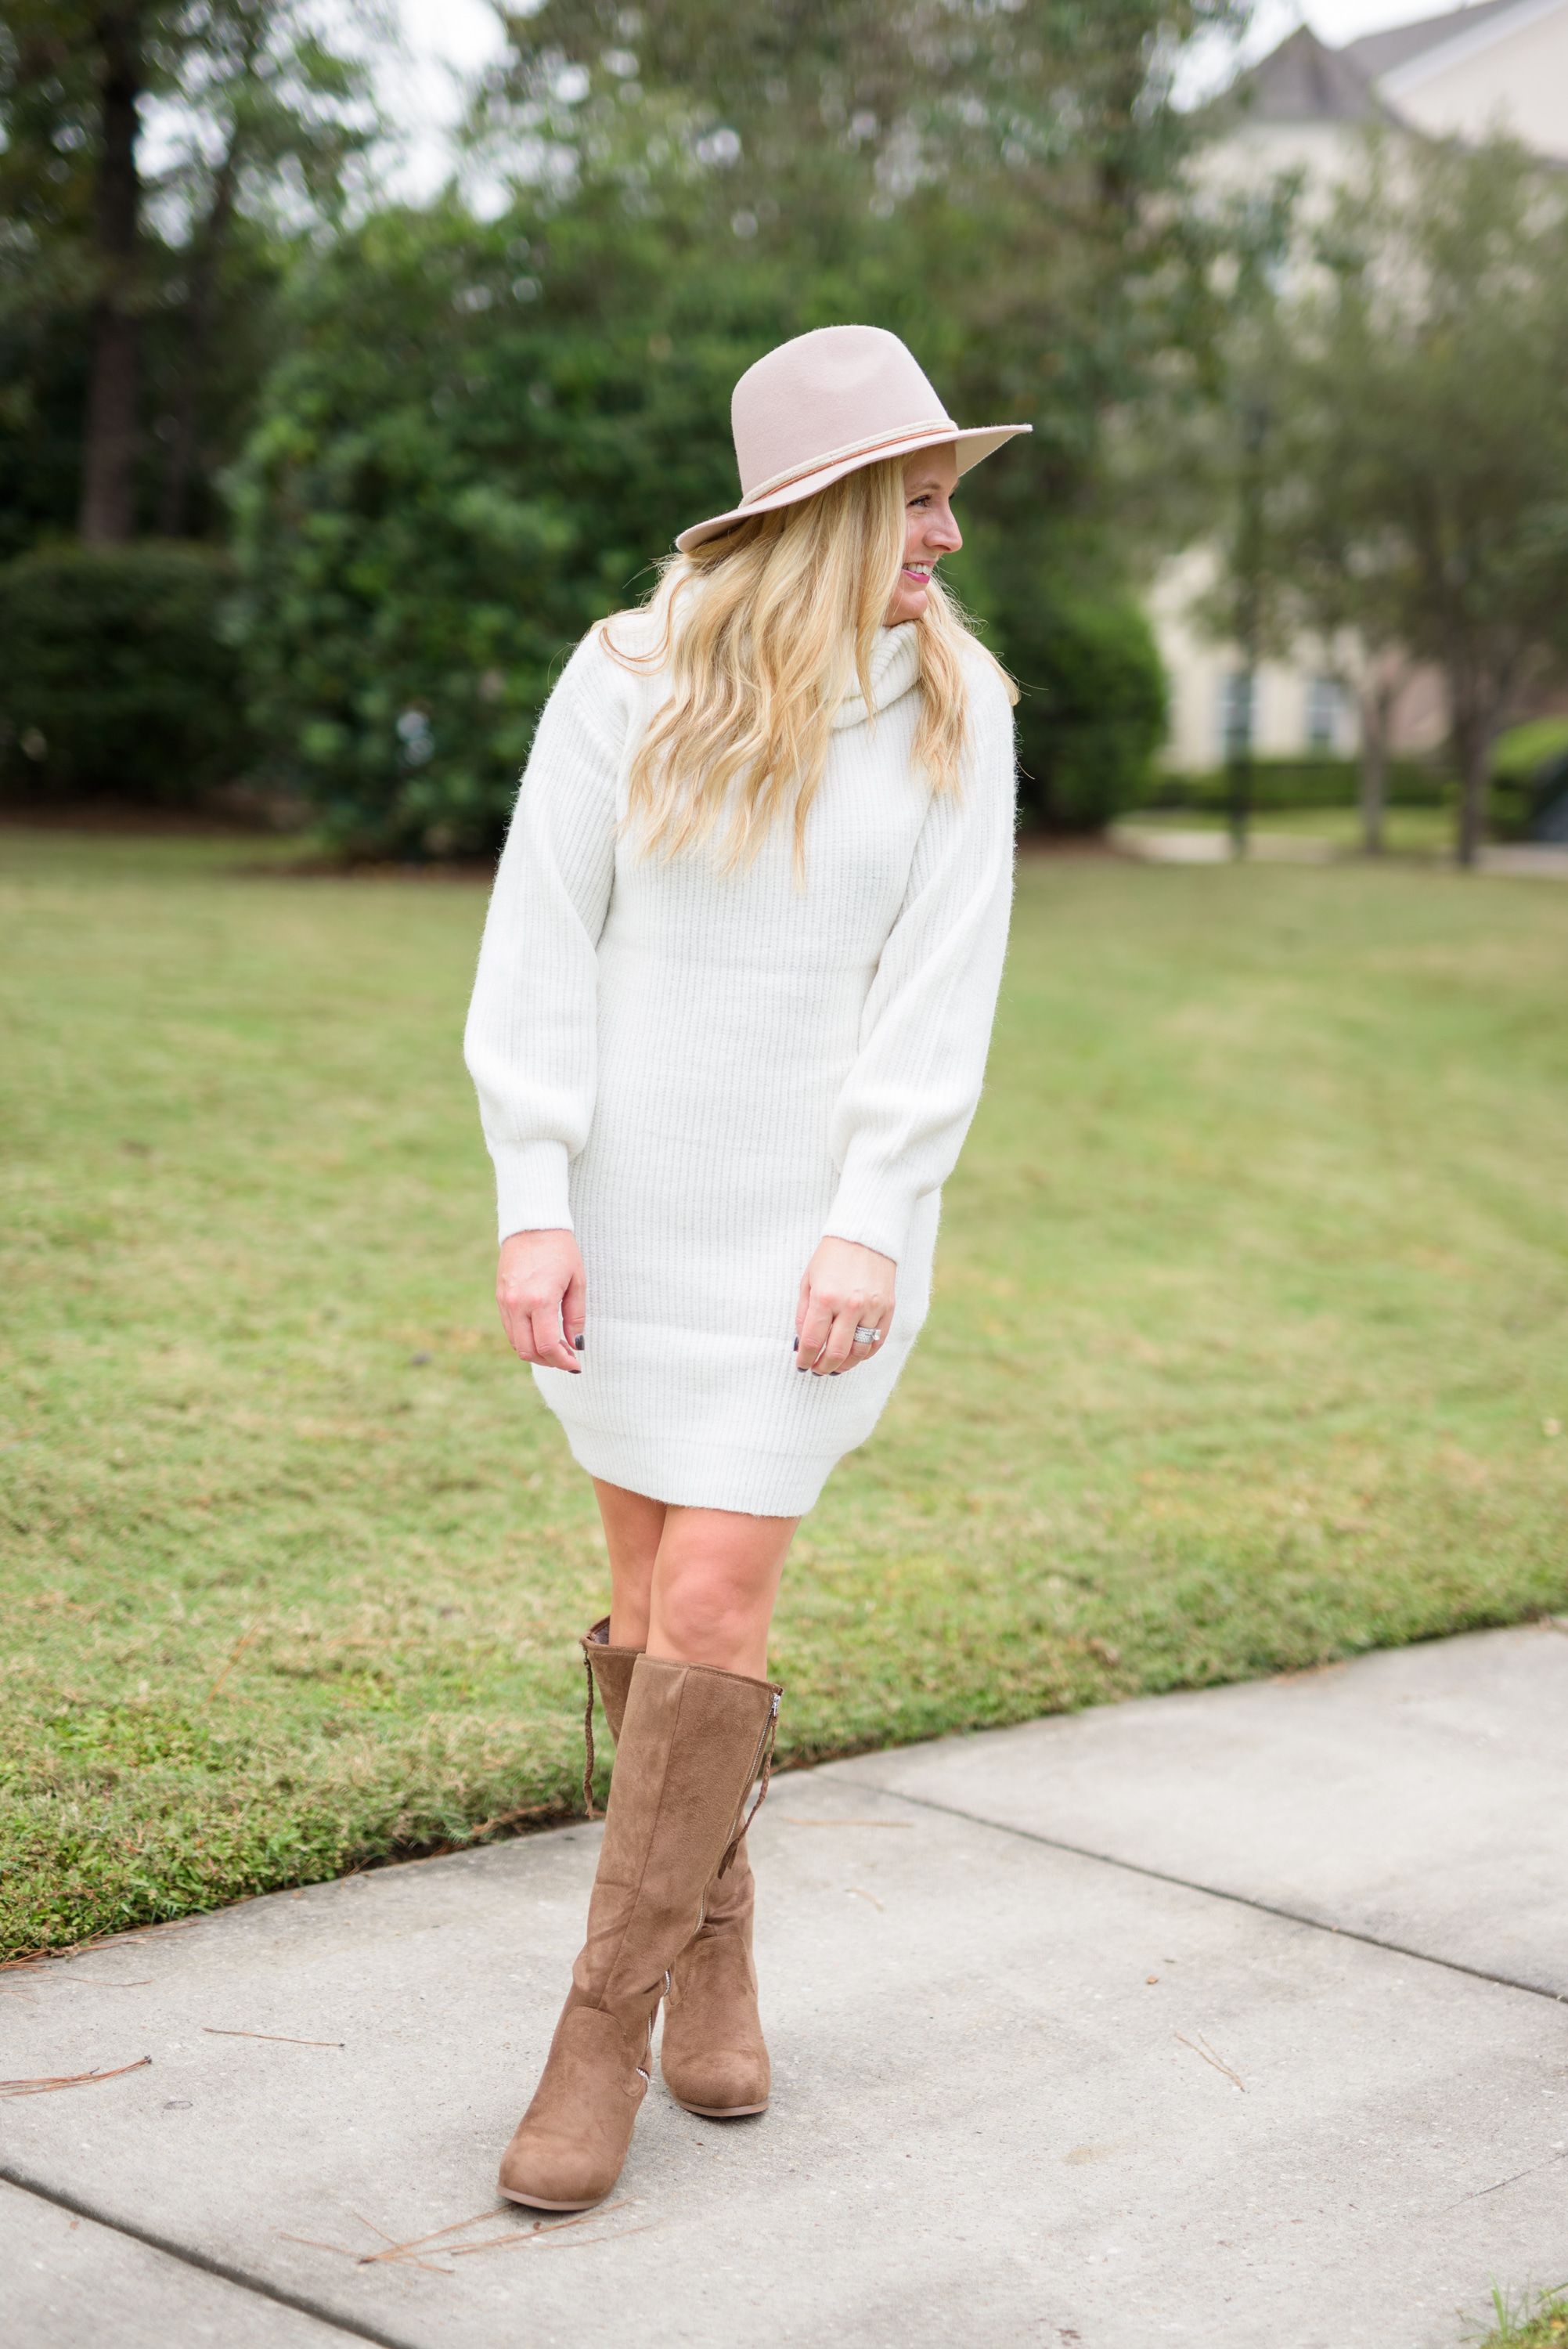 Knee High Boots by popular Houston fashion blog, Fancy Ashley: image of a woman standing outside and wearing a Nordstrom Rack TOPSHOP Turtleneck Sweater Dress, Nordstrom Rack JOURNEE Collection Sanora Knee High Boot, and Nordstrom Rack Frye Braided Crown Felted Fedora Hat.